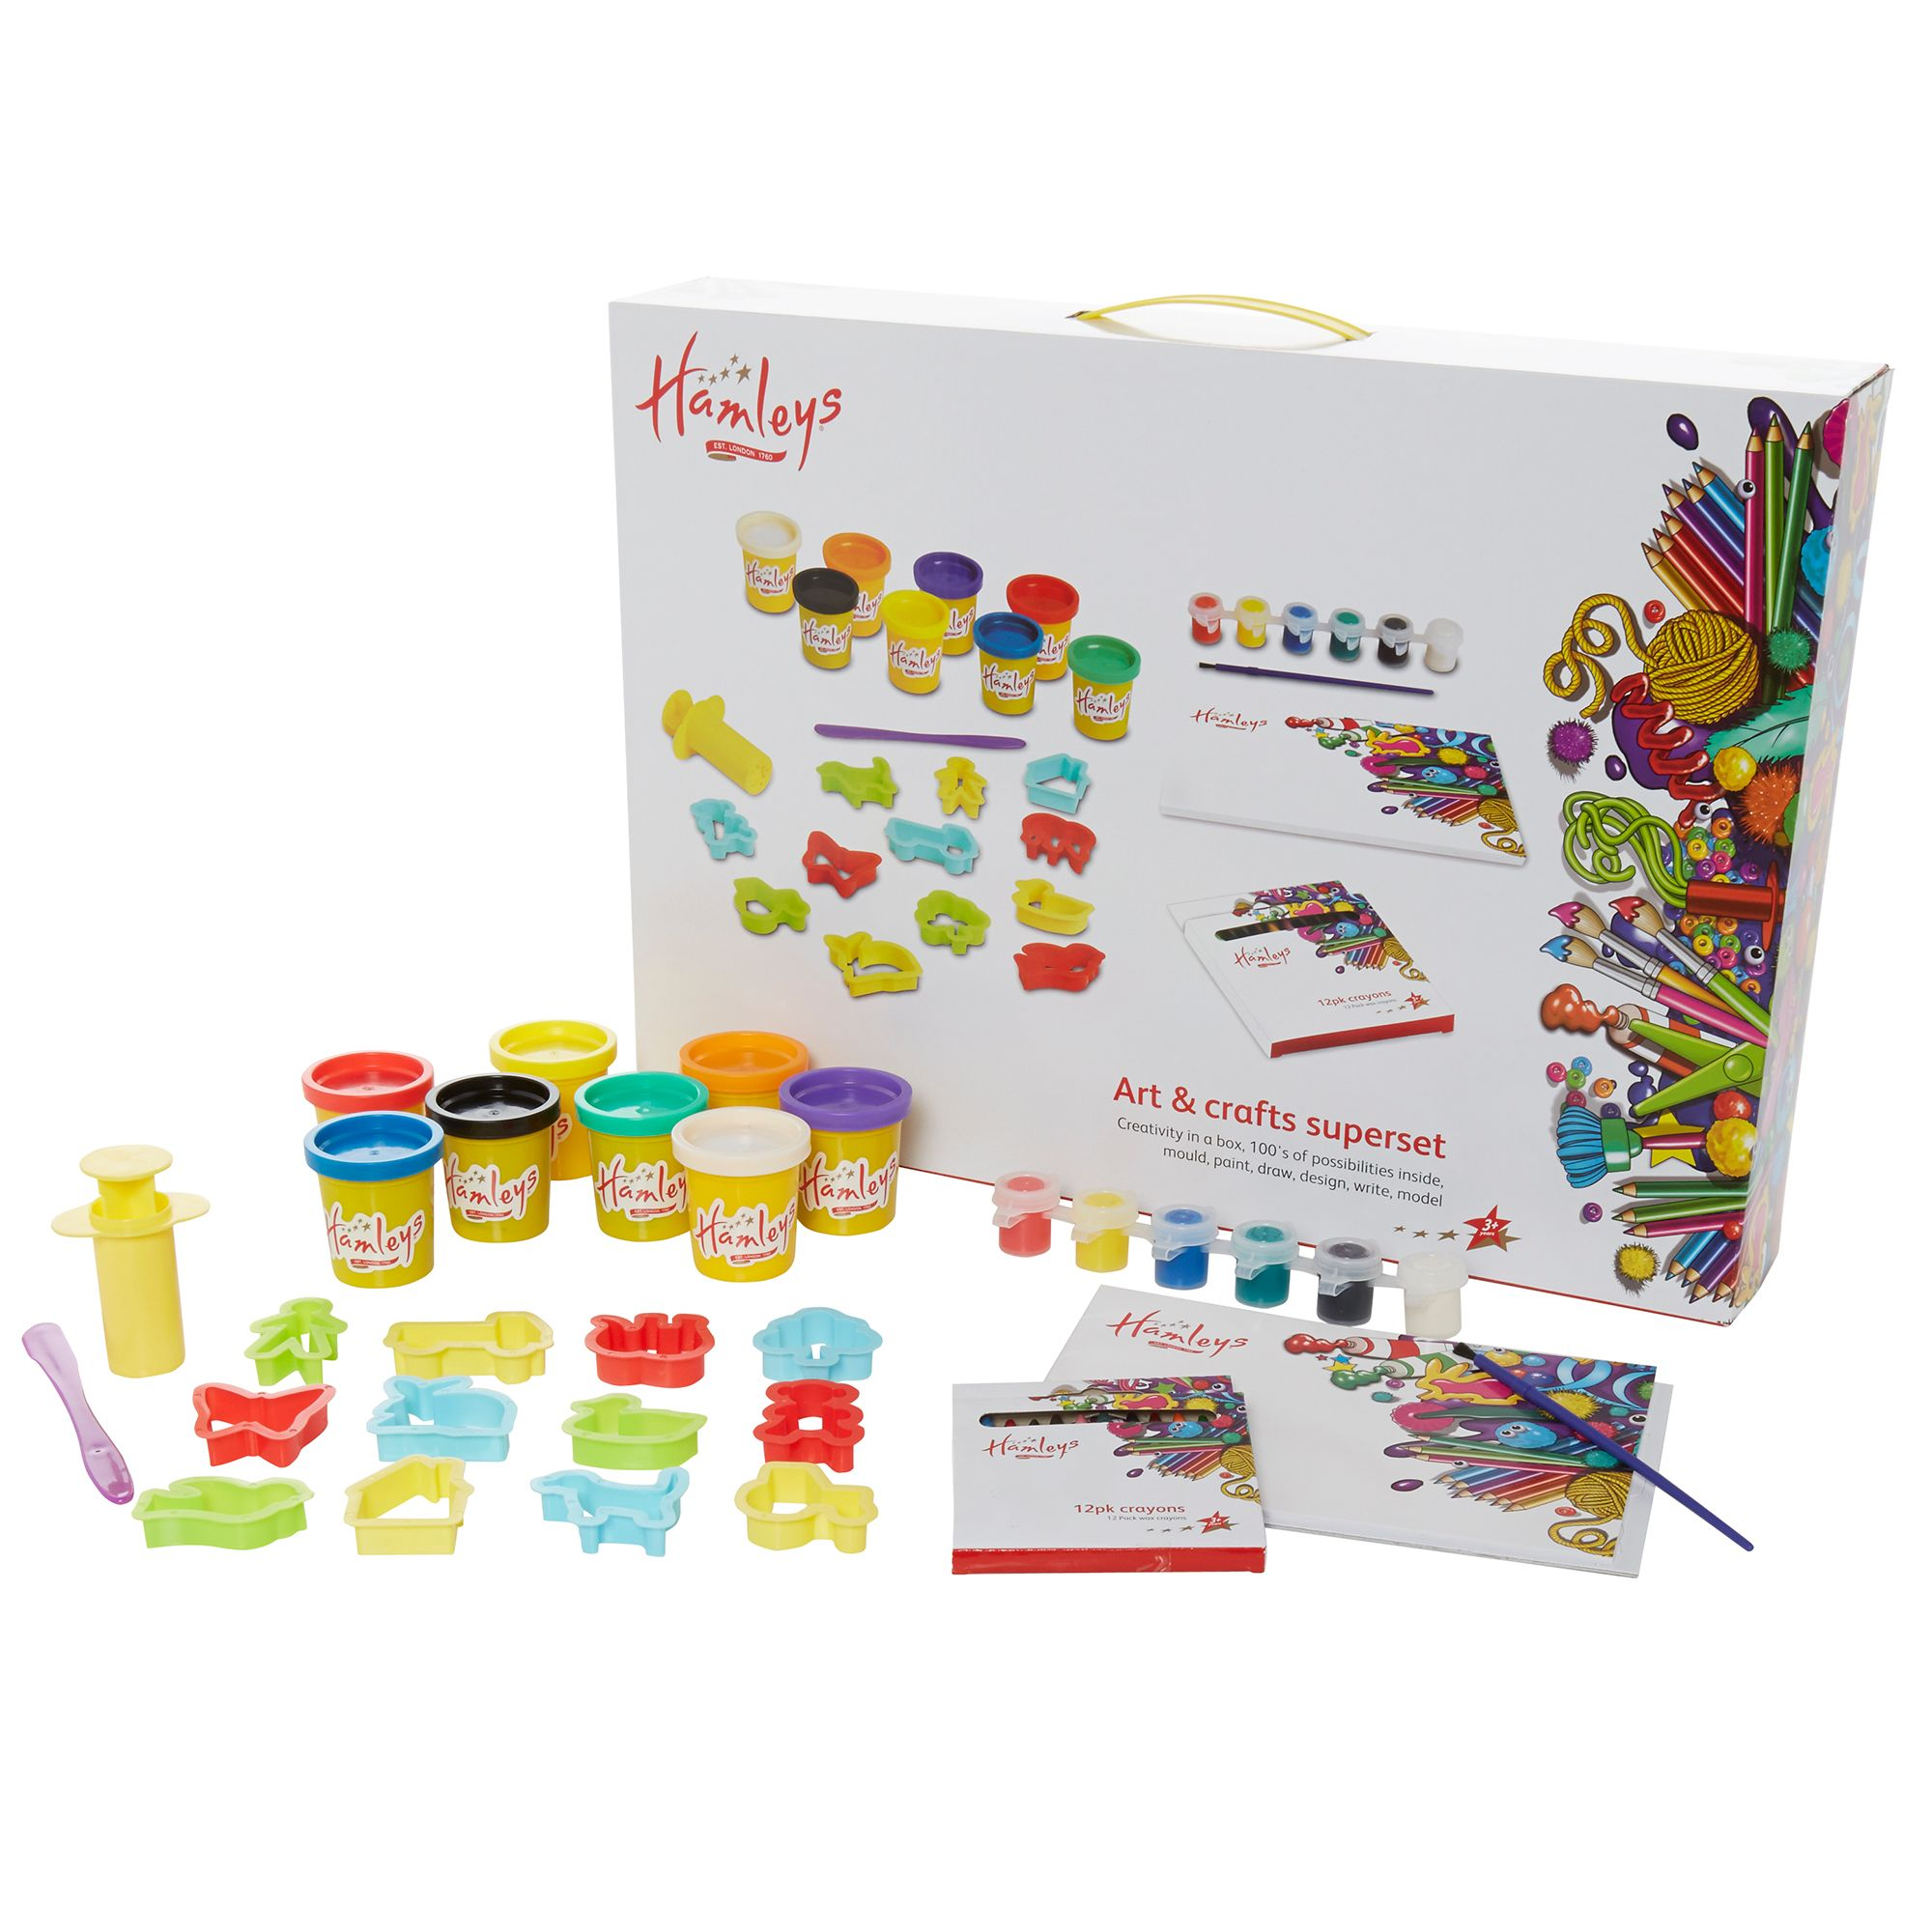 Hamleys Arts & crafts super set